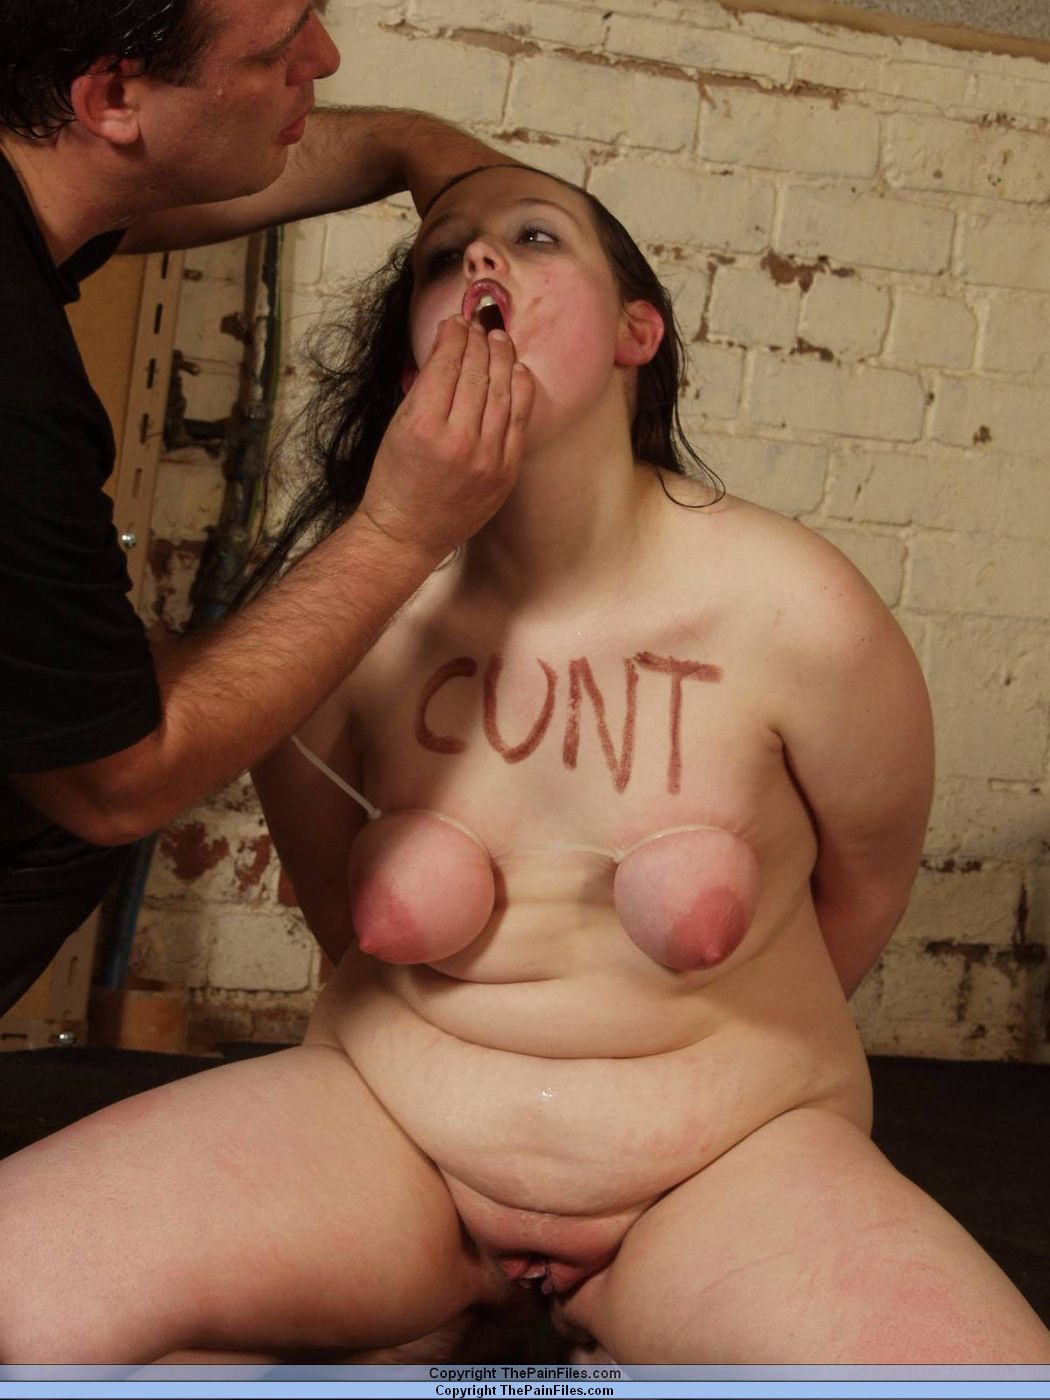 Share bdsm pain and humiliation can